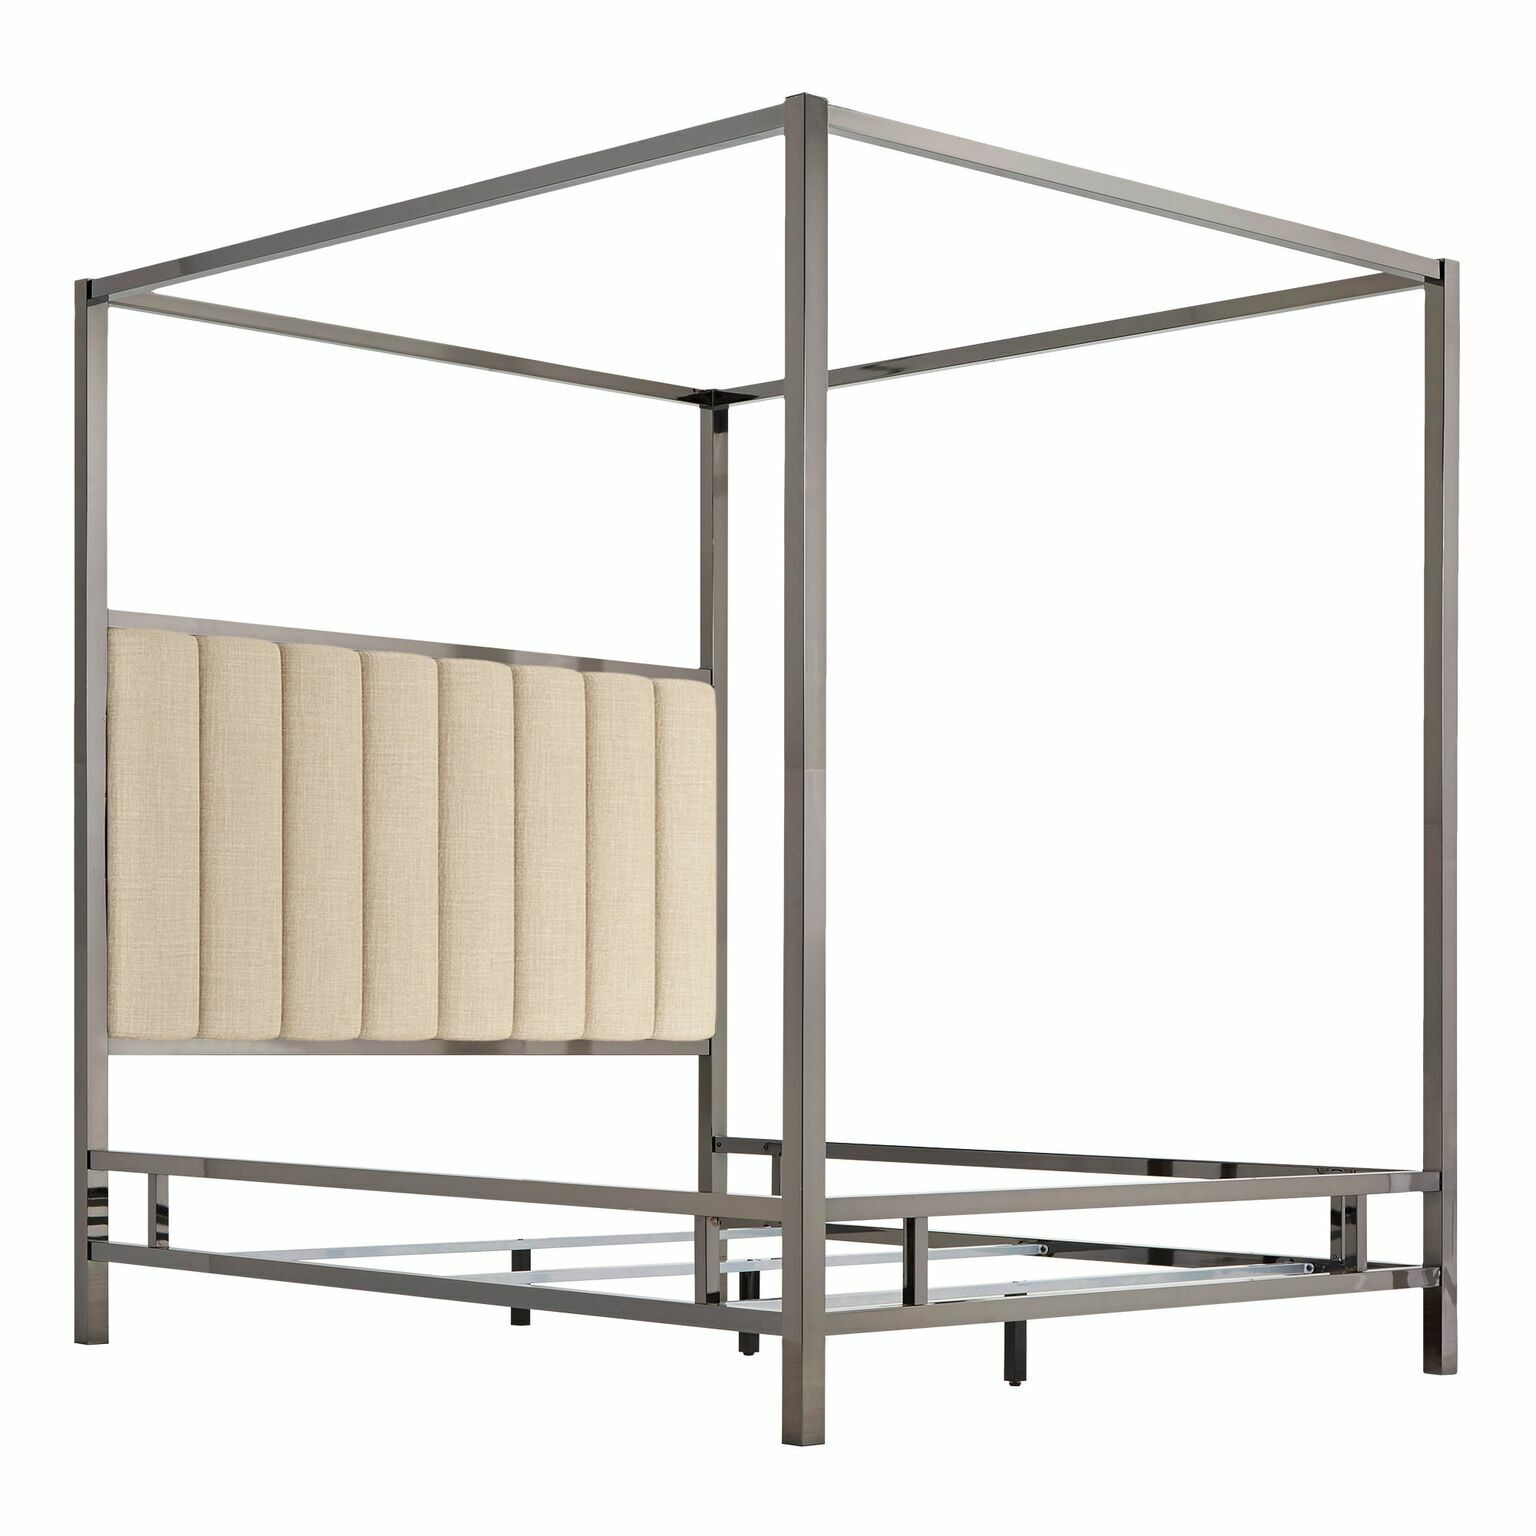 Wicklund Upholstered Canopy Bed Color (Frame/Headboard): Black Nickel/Beige, Size: Queen